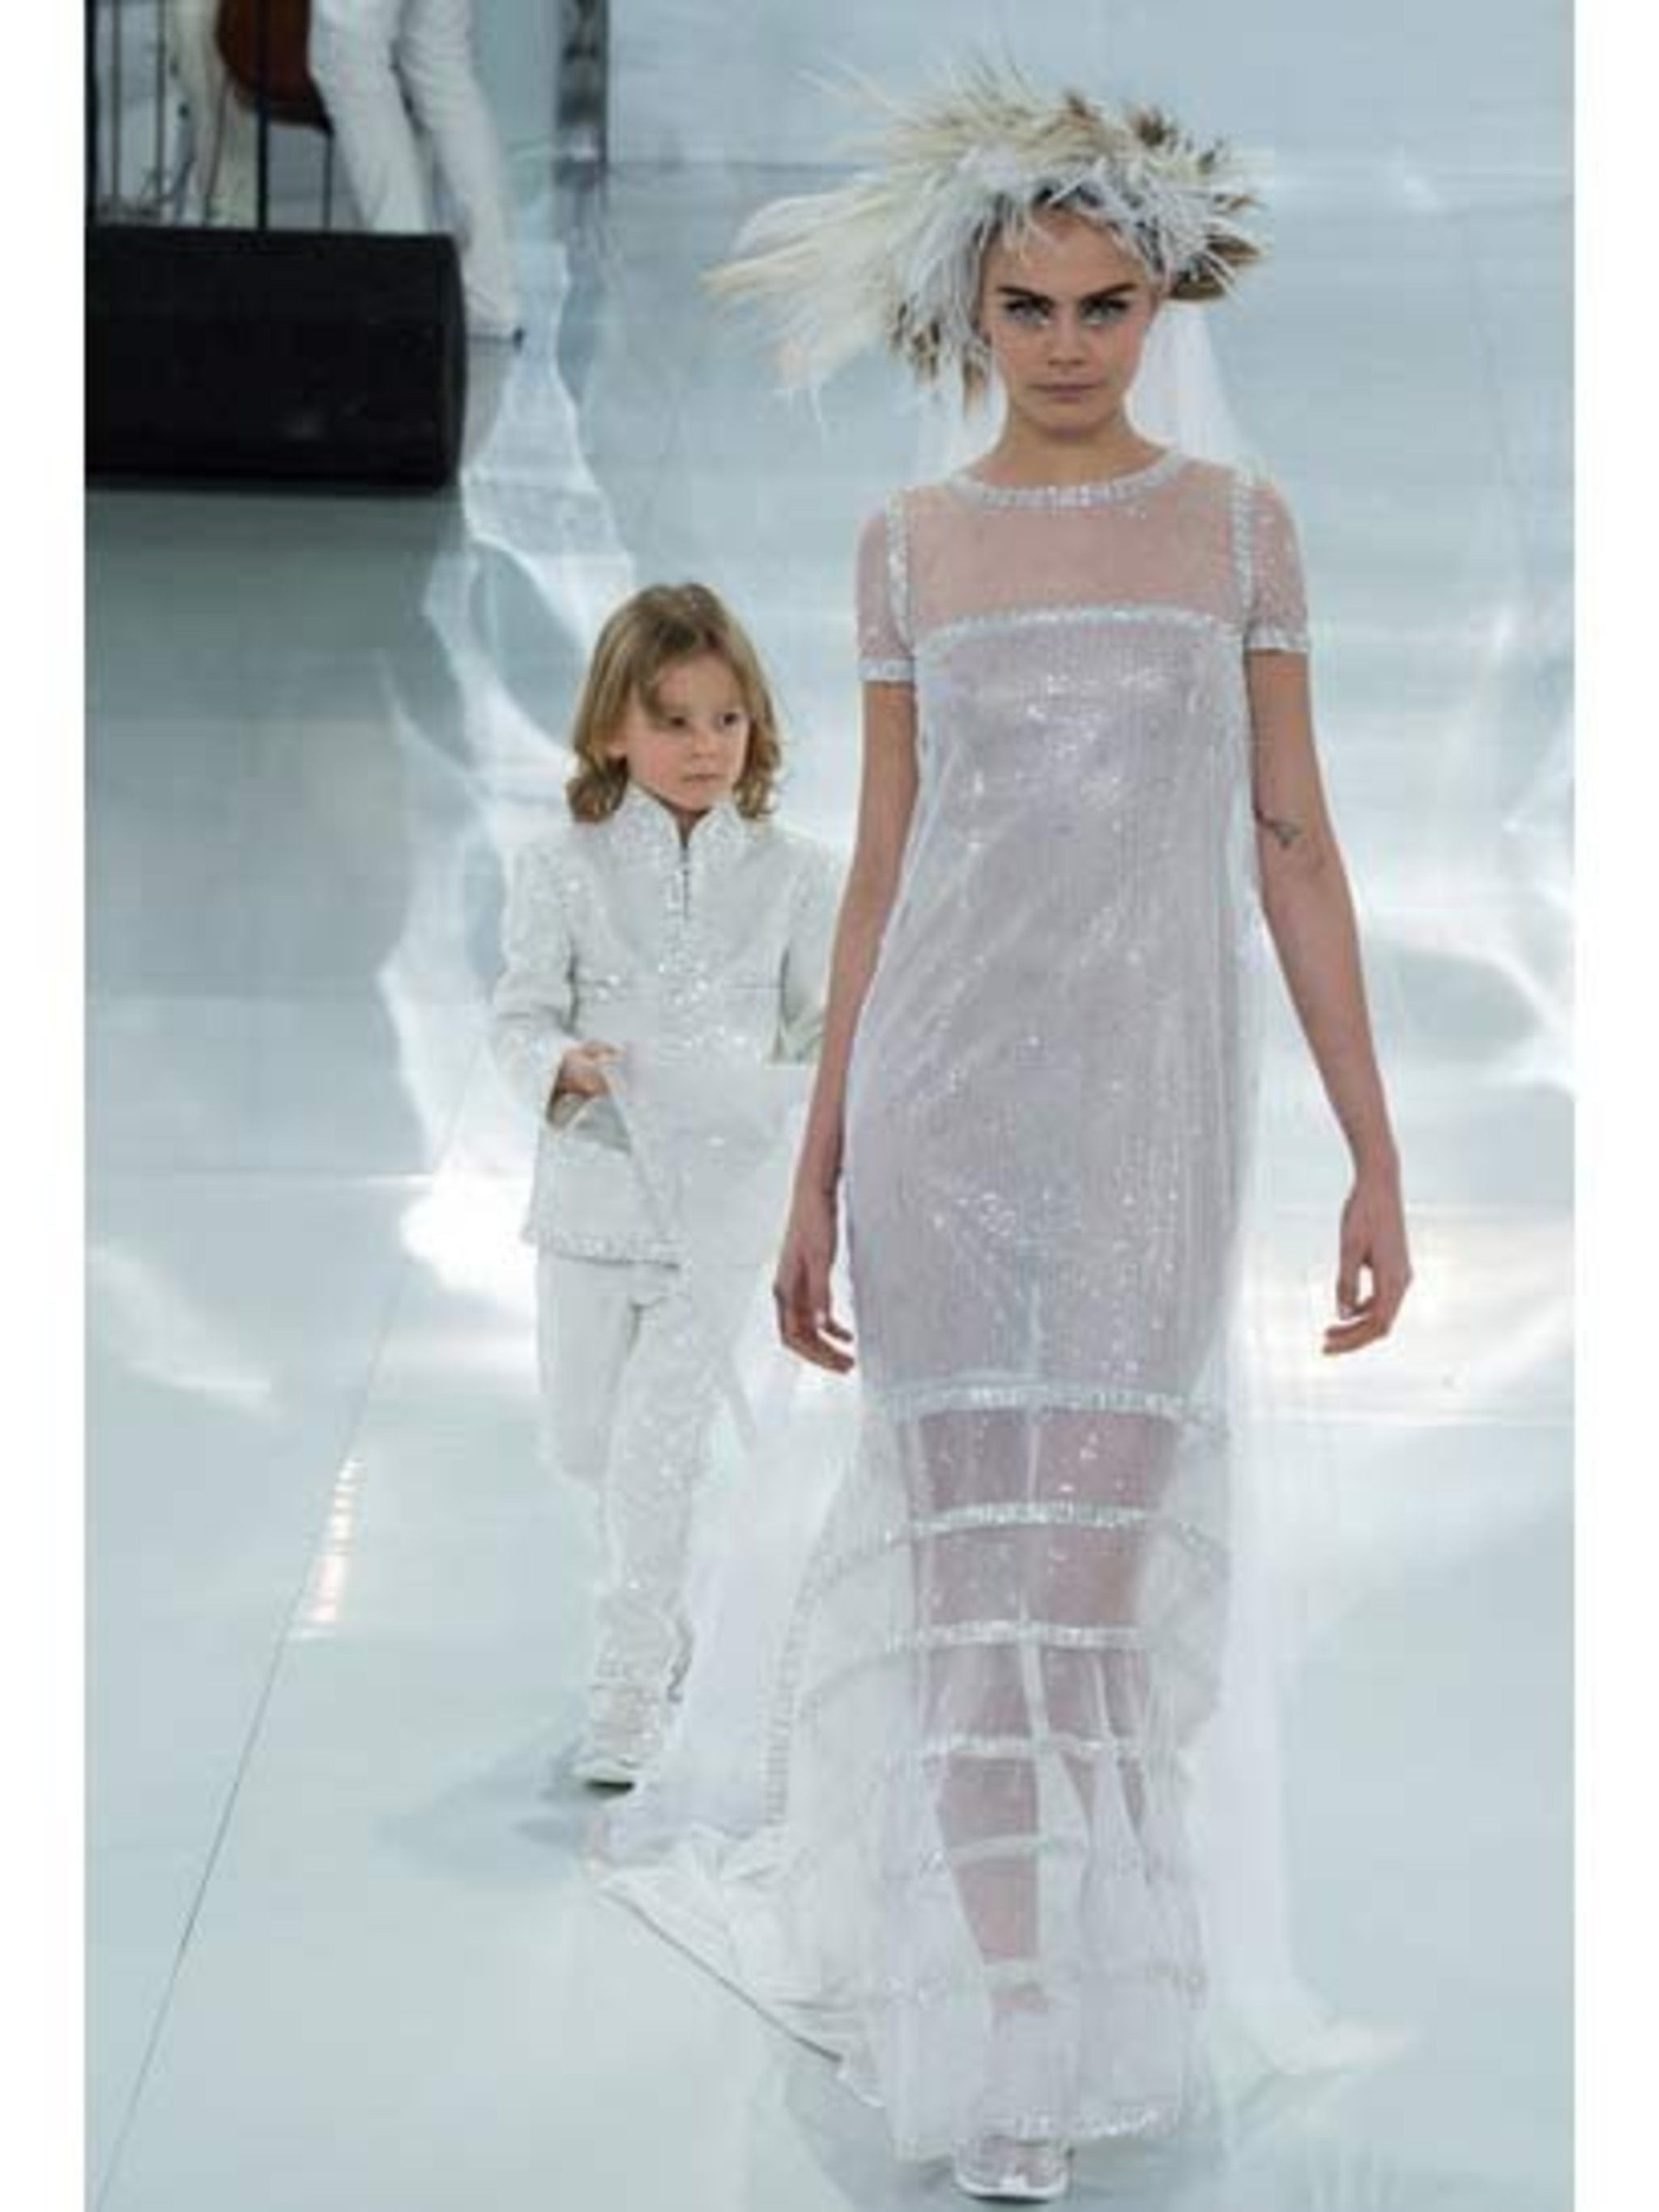 <p>Getting married in Chanel: cool. Getting married in Chanel trainers: even cooler.By Chanel.</p>